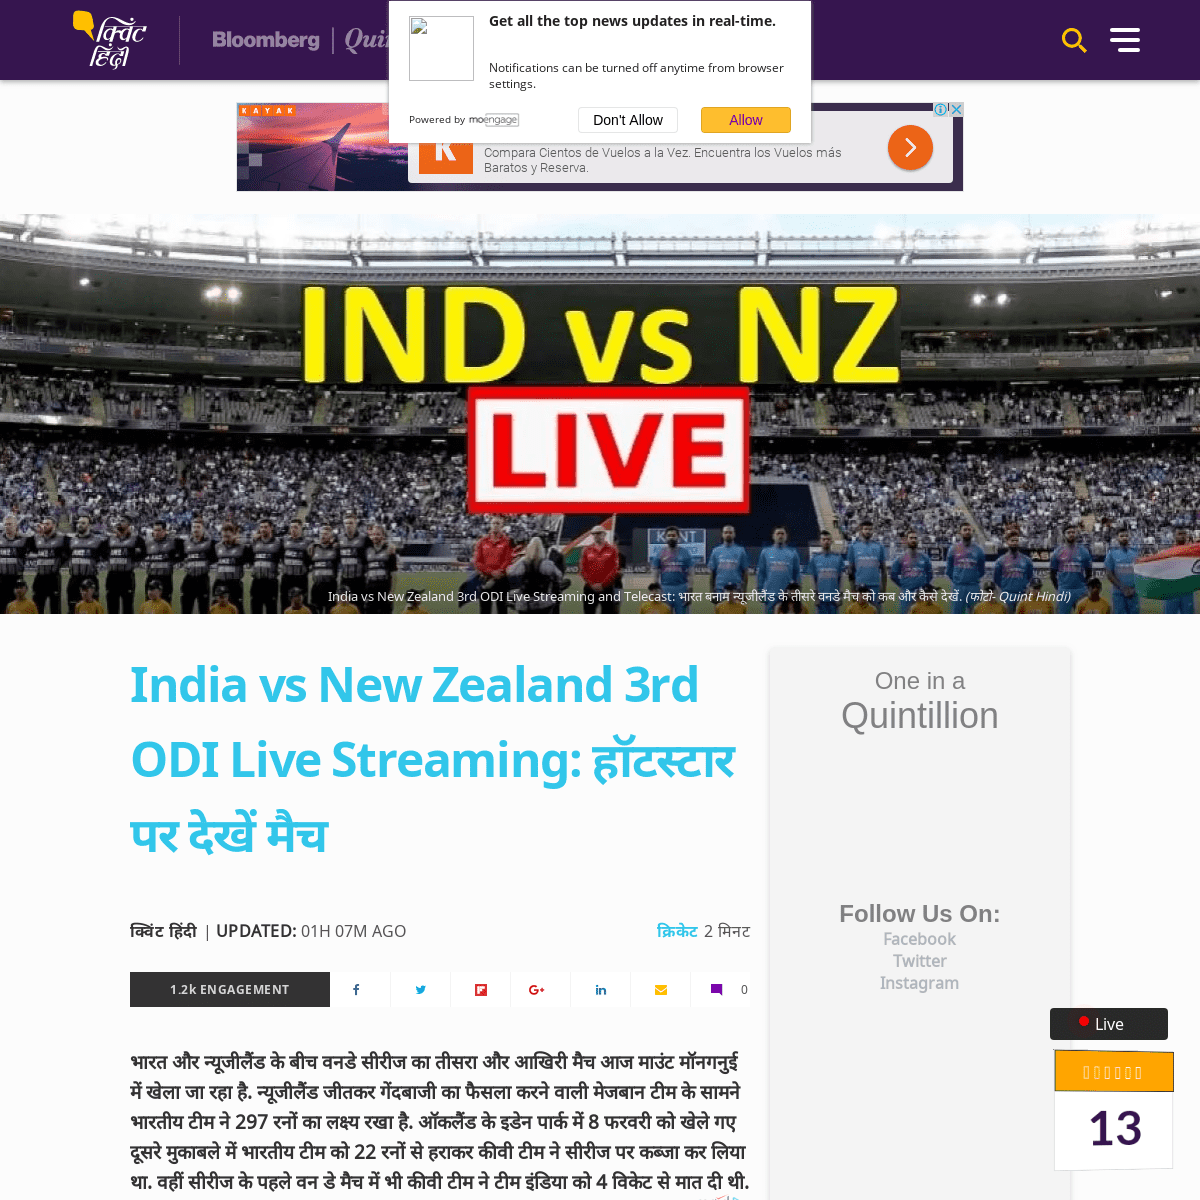 India vs New Zealand Live streaming in Hindi on DD Sports, Hotstar, Star Sports. Where to watch Ind vs NZ 3rd ODI cricket match.